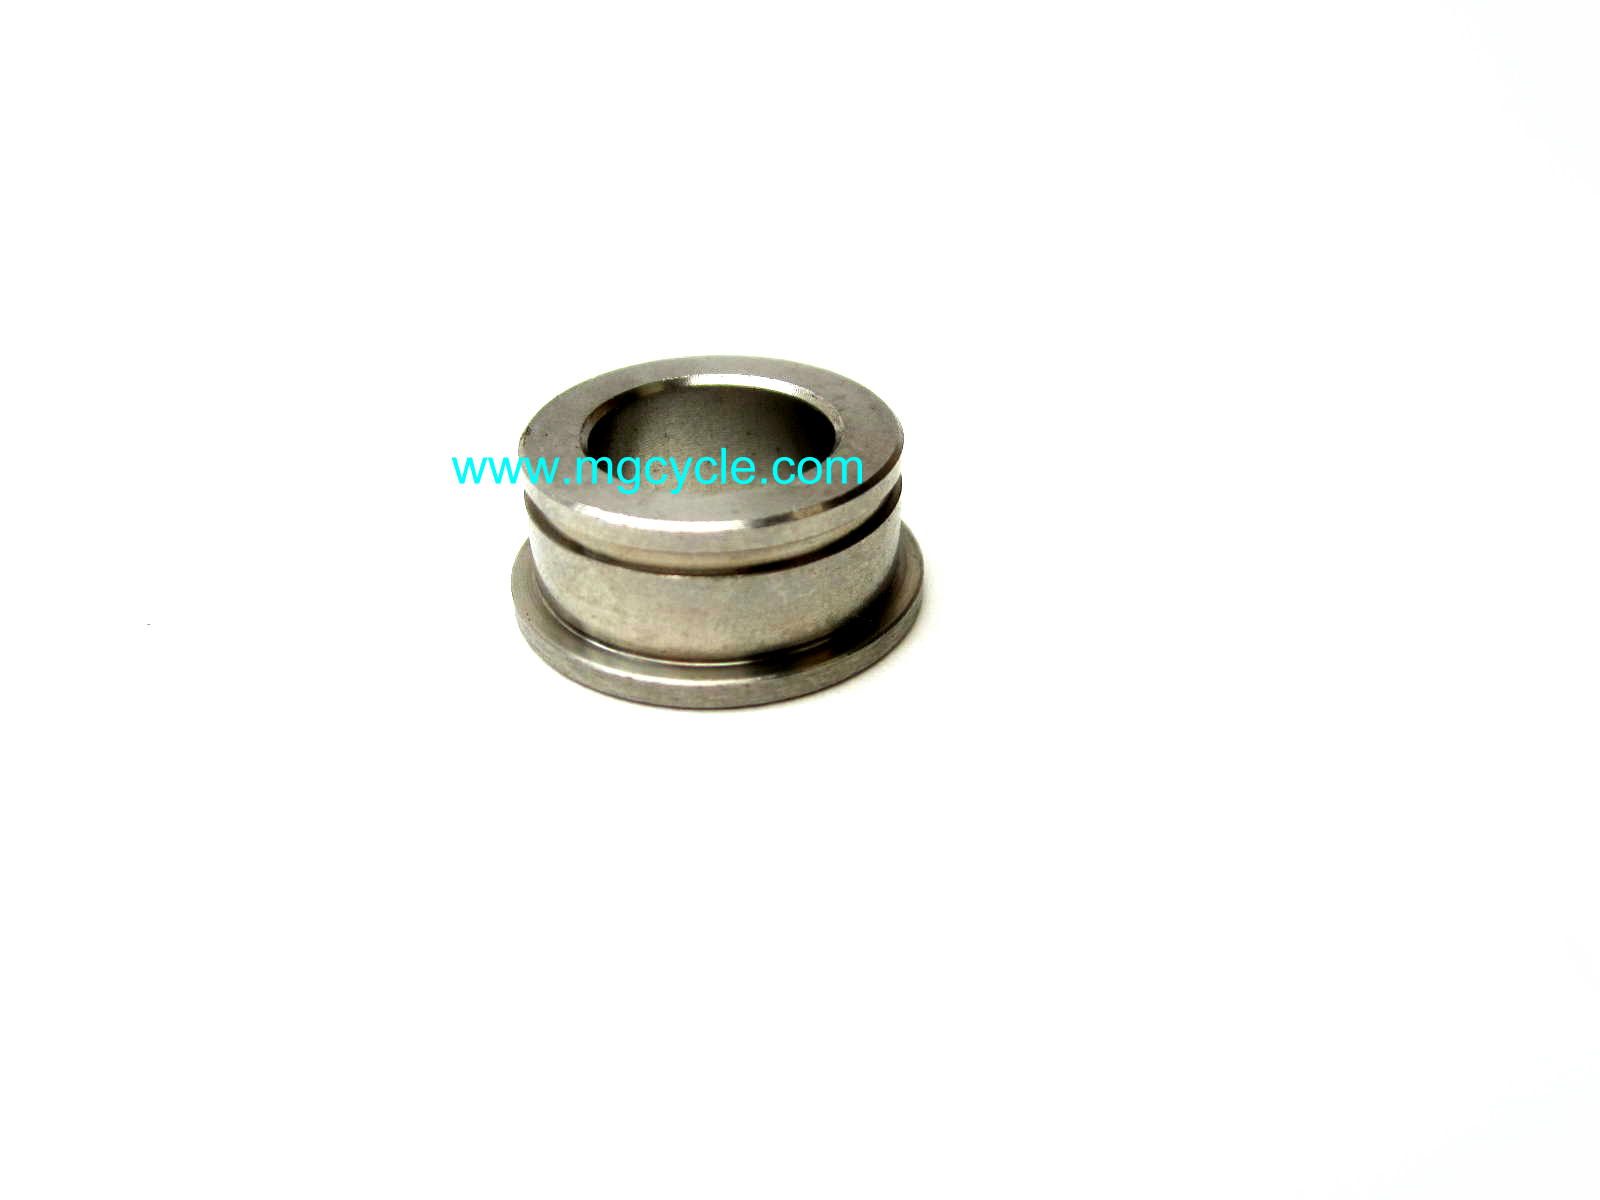 Brake disk bushing 1000S SP3 Cal3/1100 LeMans 4/5